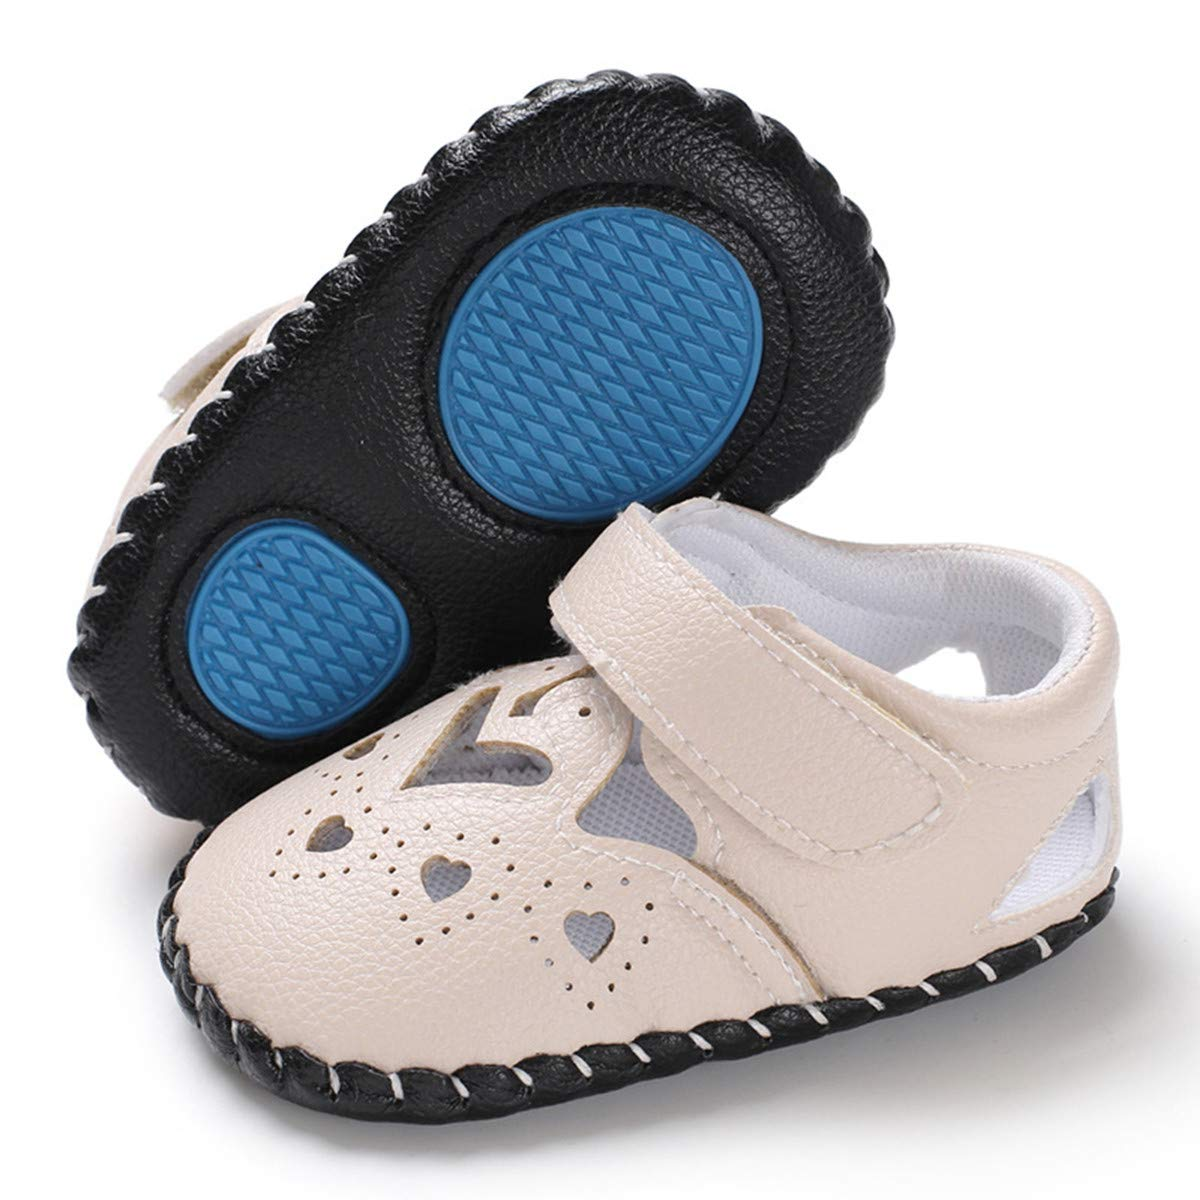 BENHERO Infant Baby Girls Summer Sandas Soft Leather Mary Jane Flats No-Slip Princess First Walking Crib Shoes